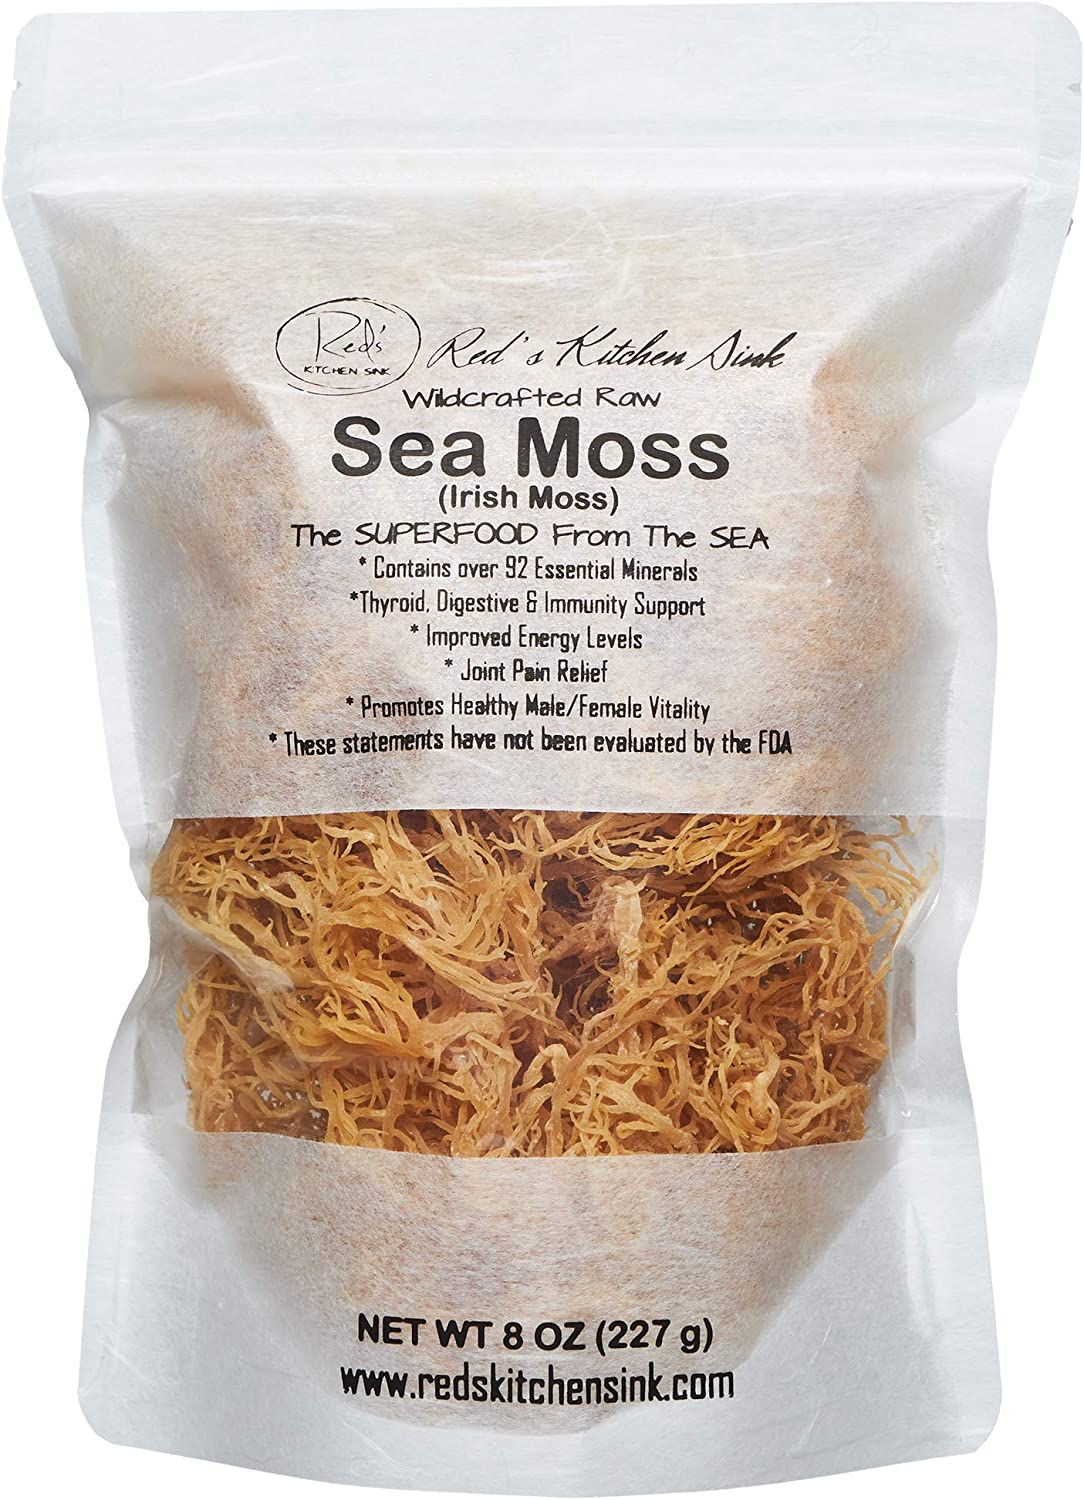 Amazon.com: Sea Moss/Irish Moss - Wildcrafted - 100% Natural, Raw, Vegan,  Imported from St. Lucia - Salt Free, Sand Free and Dry | Dr. Sebi - (8oz):  Health & Personal Care best sea moss